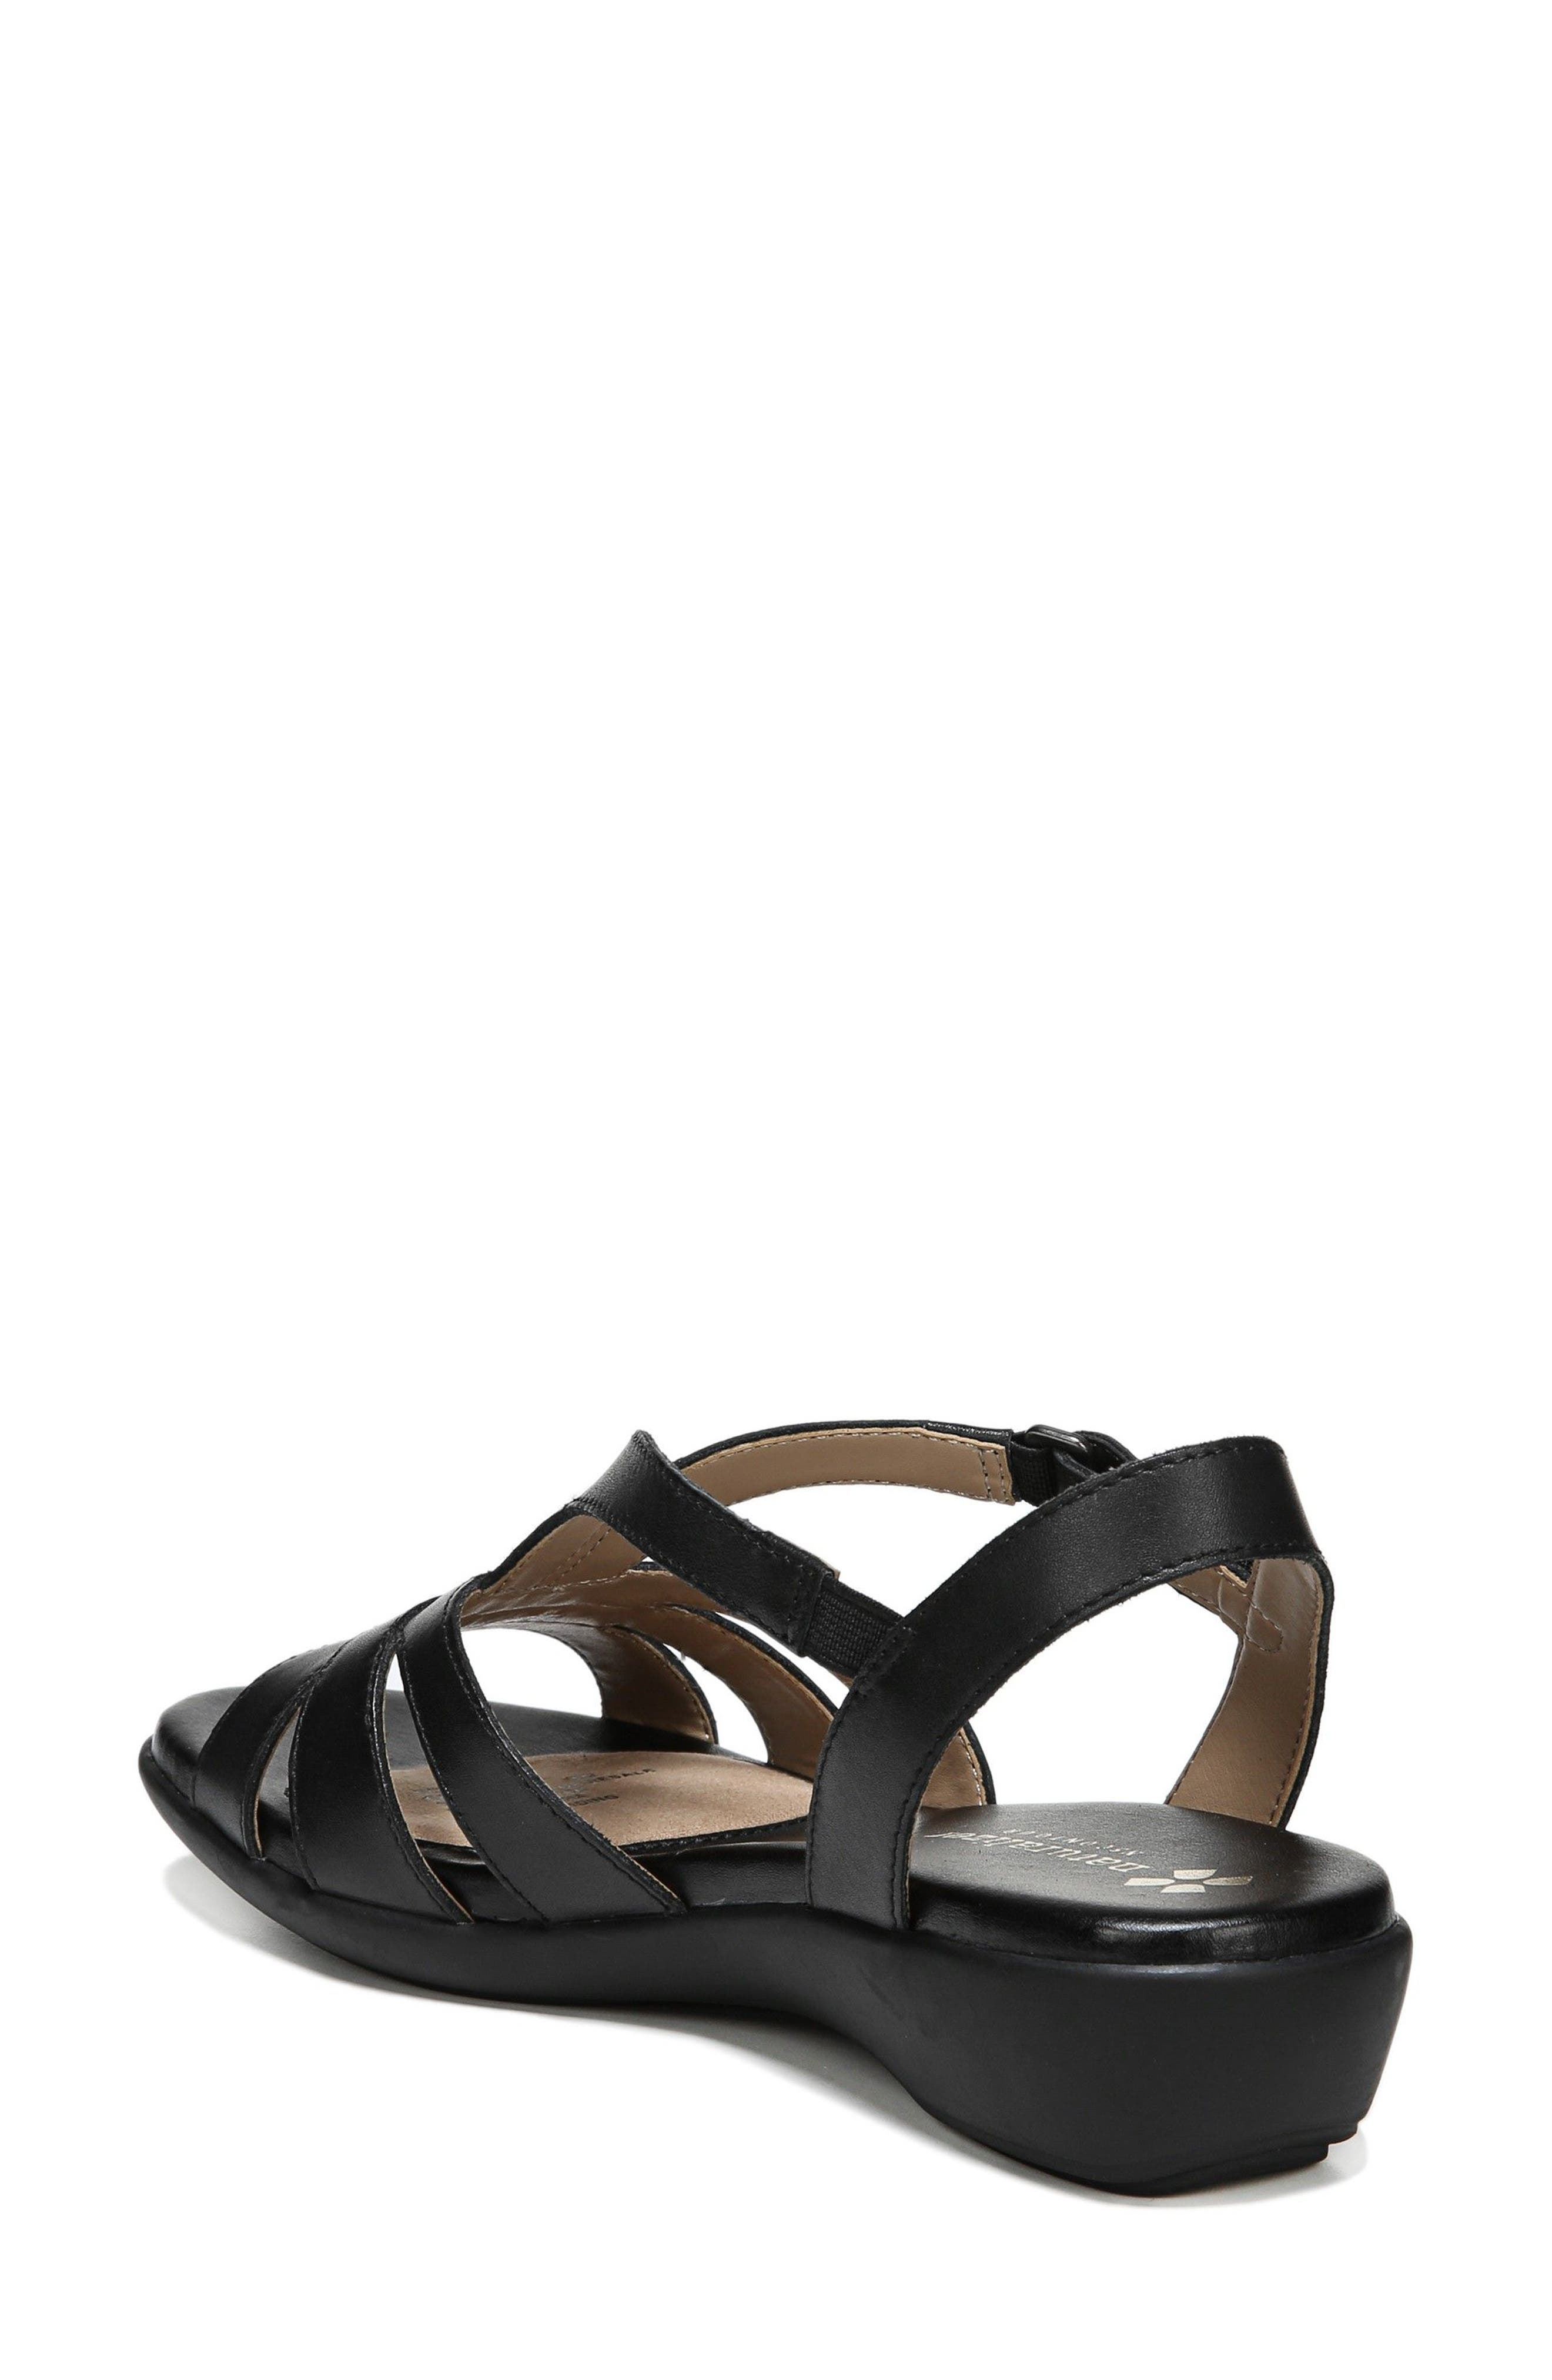 Neina Sandal,                             Alternate thumbnail 2, color,                             001